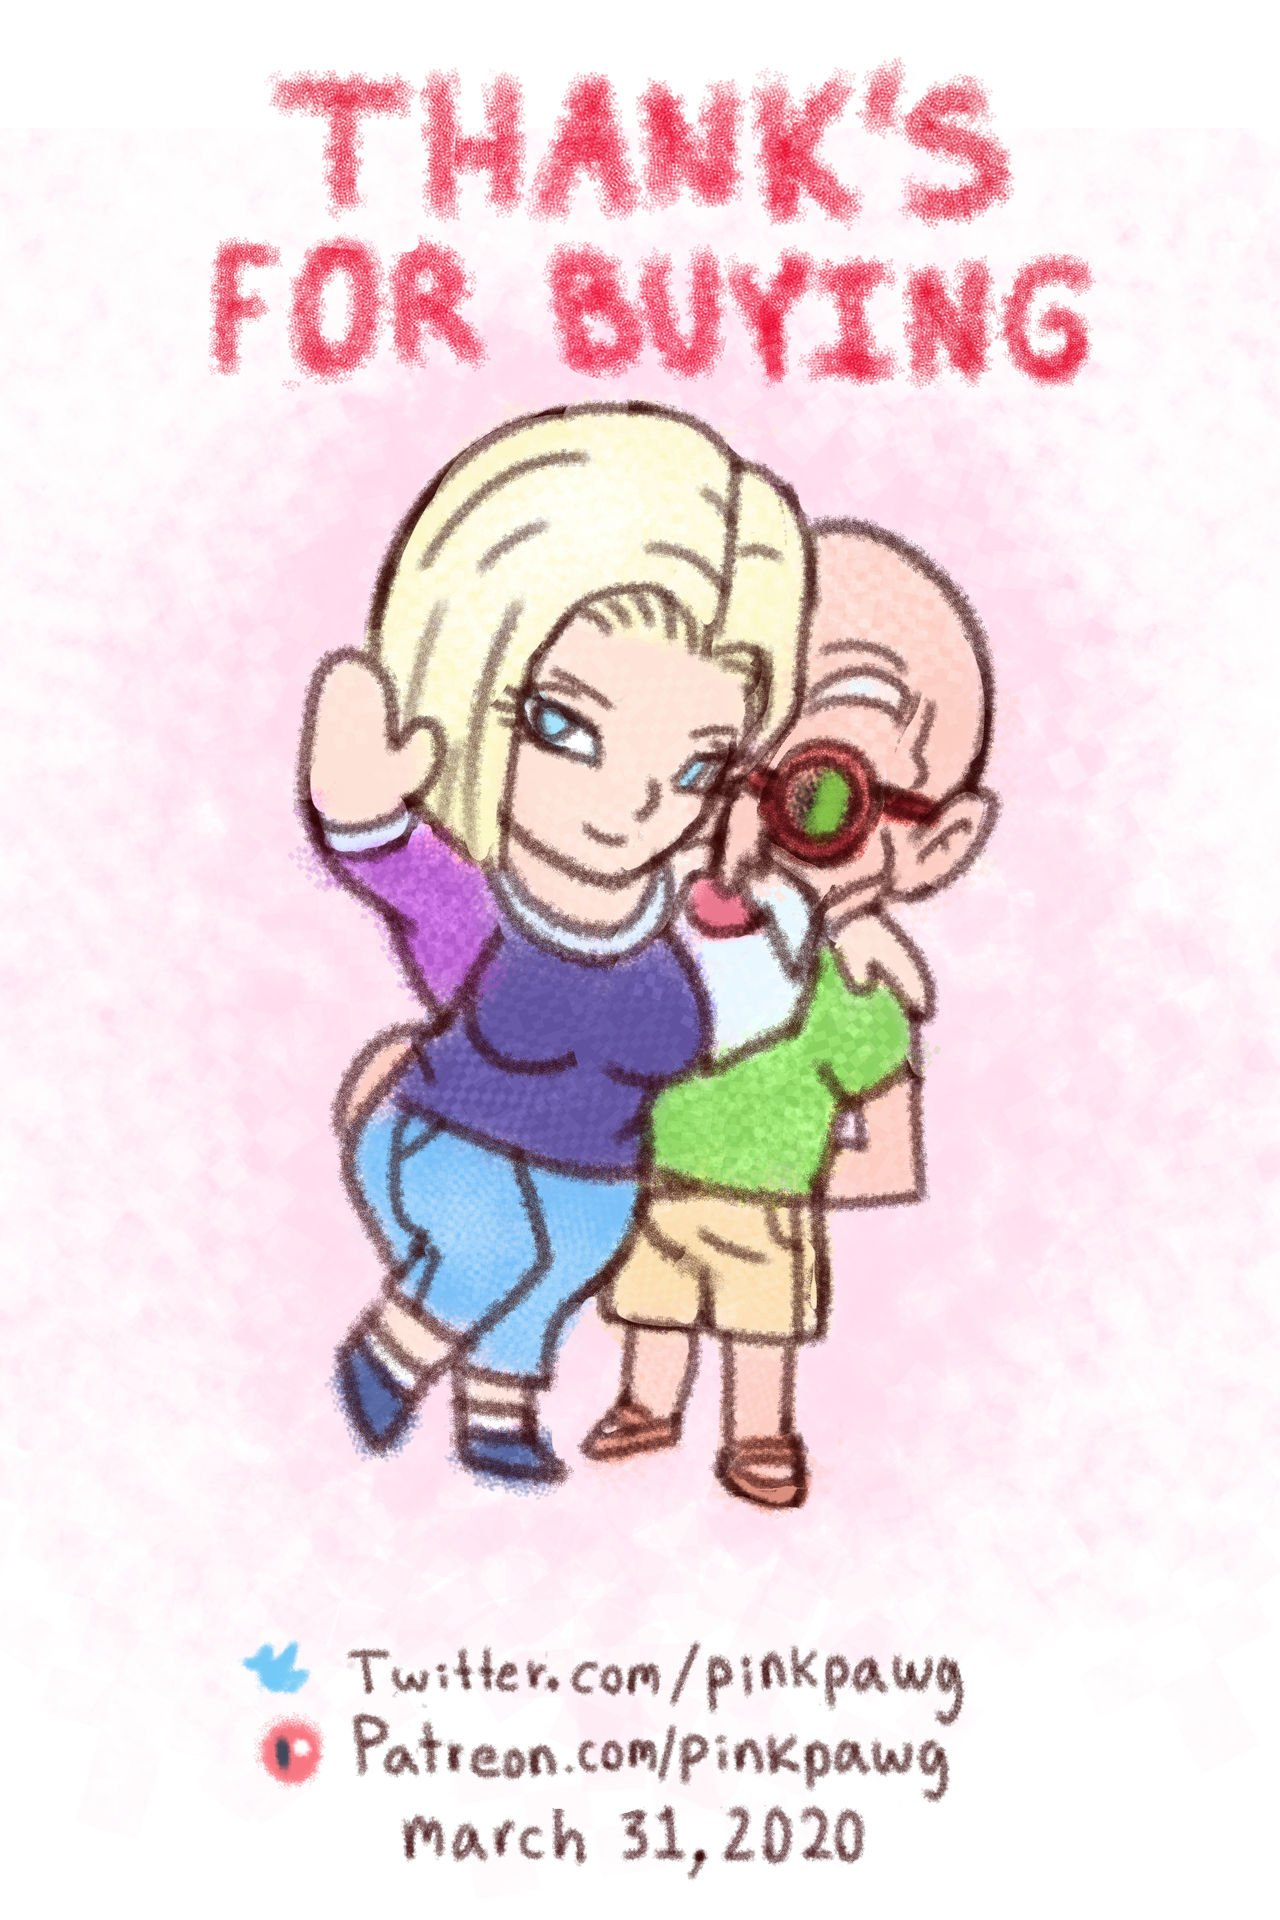 Android 18 Ntr Ep 1 Pinkpawg 23